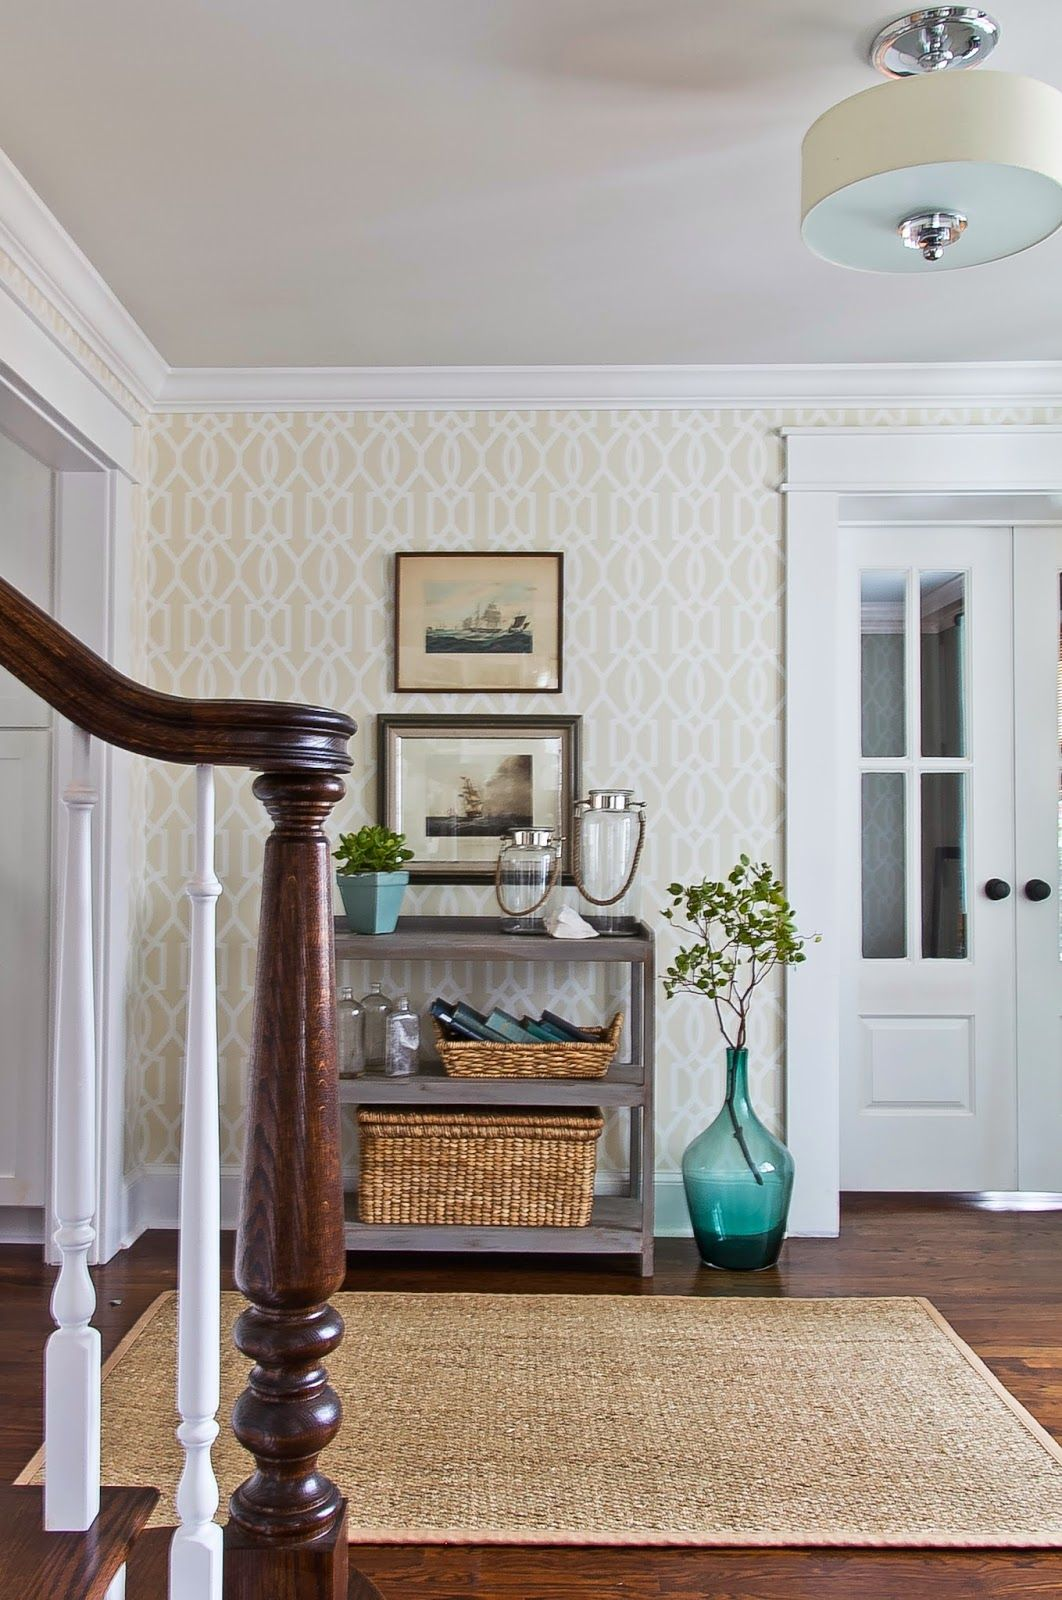 How To Separate A Room Without A Wall 10 Ways To Fake An Entryway Entryway Decorating Tips